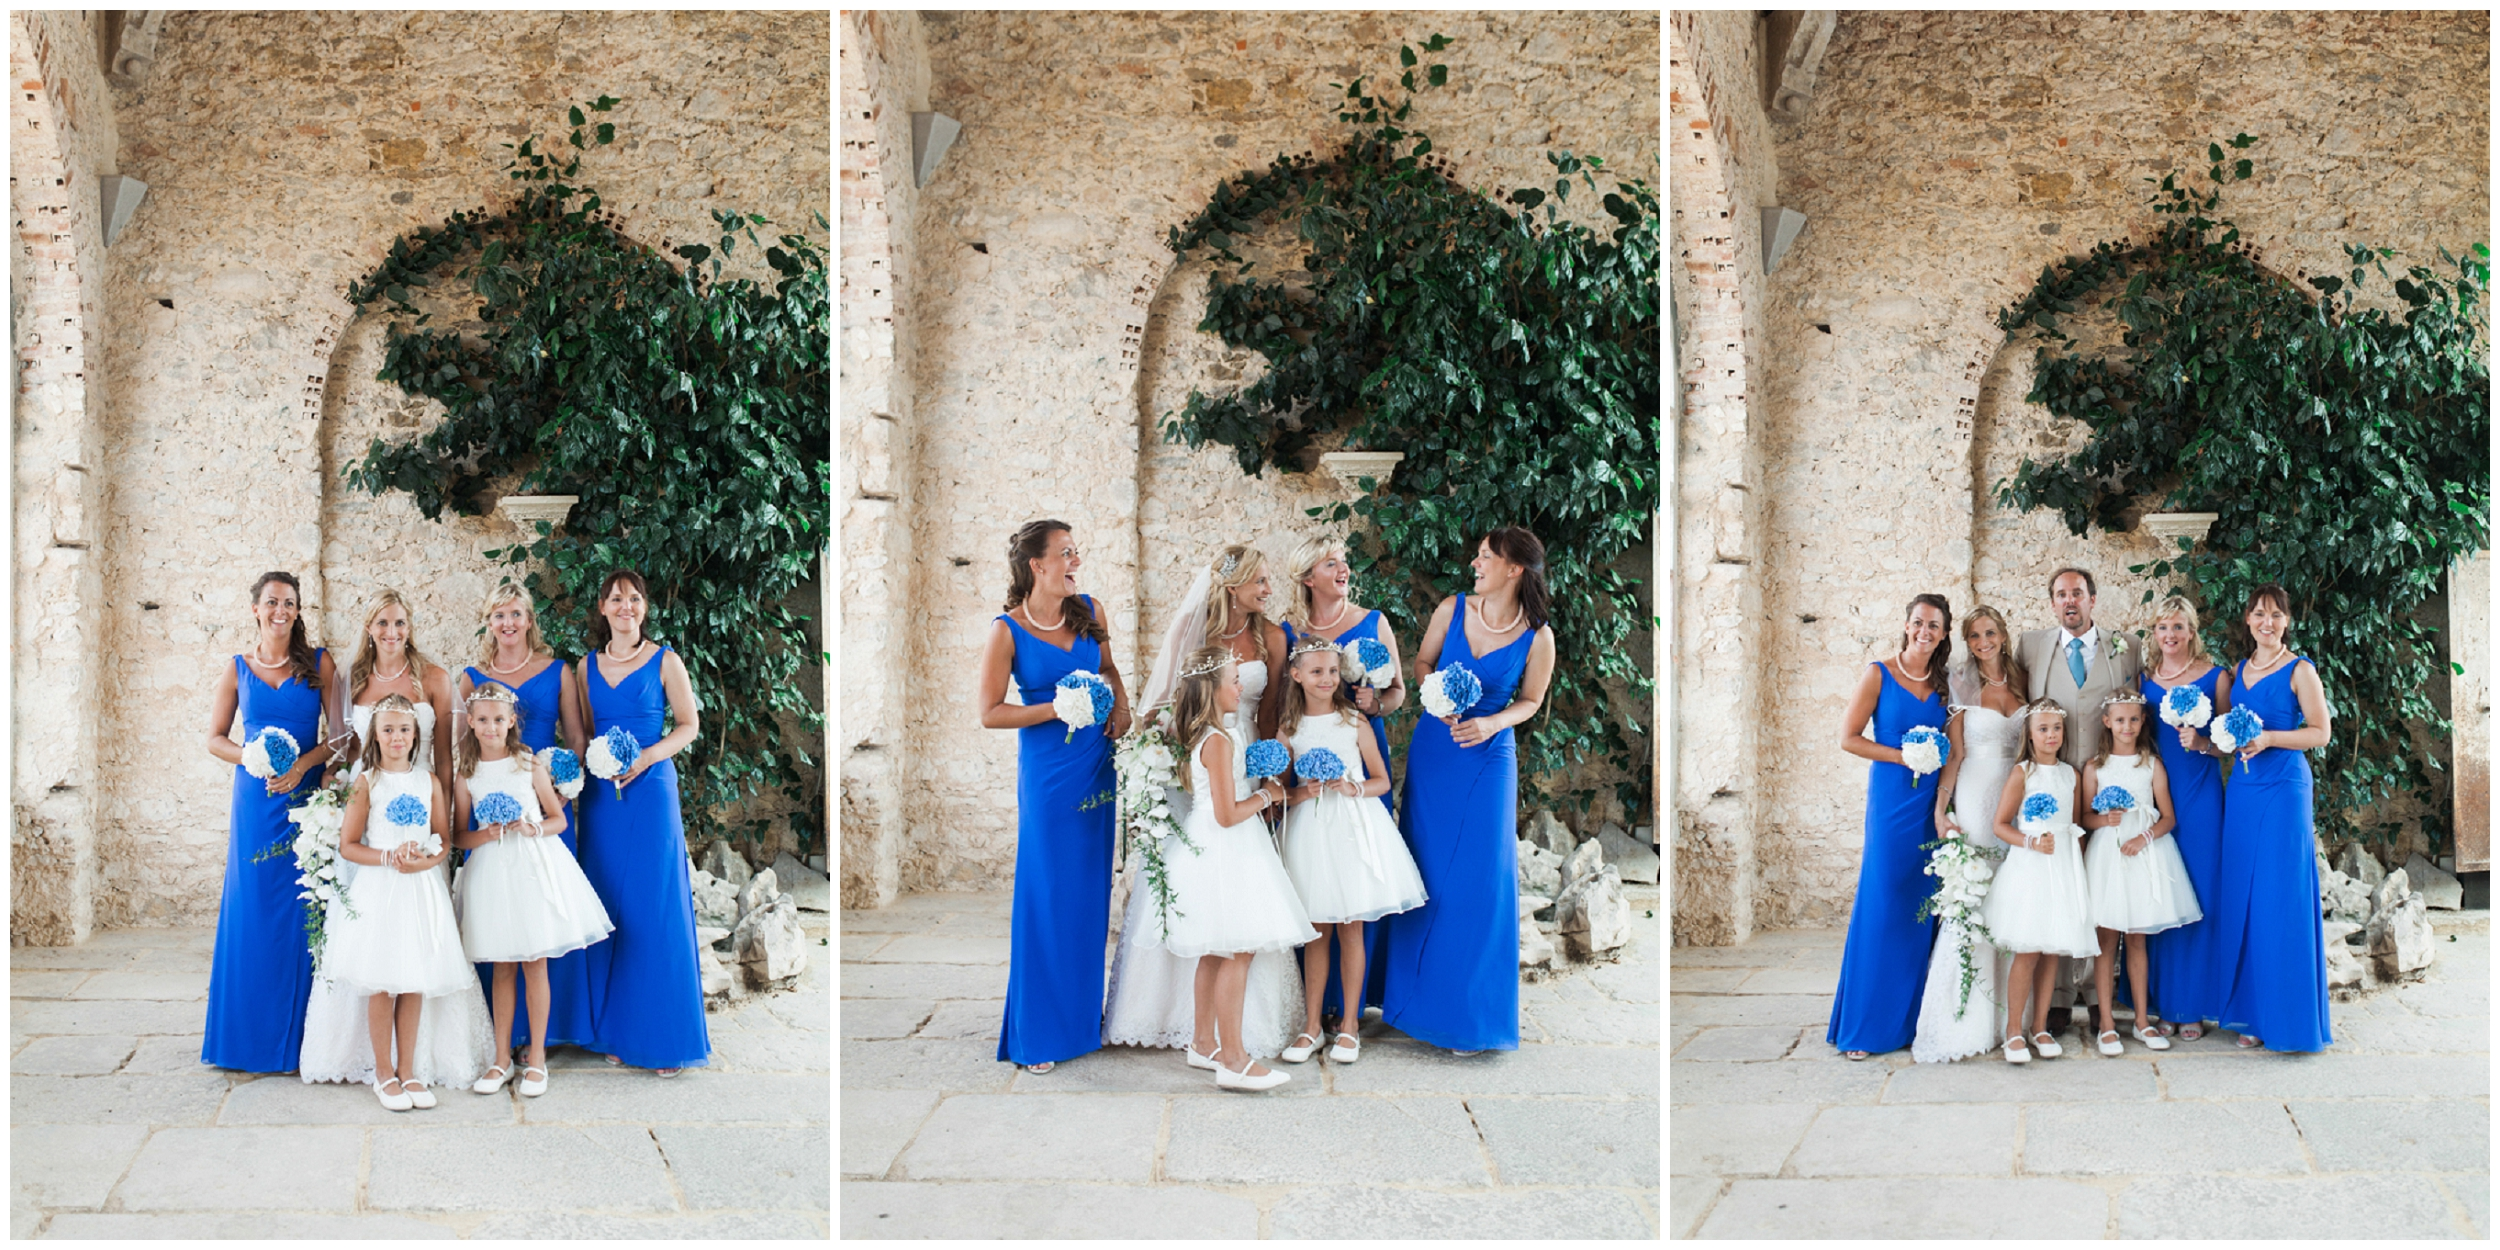 maria+rao+wedding+photographer+portugal_0184.jpg